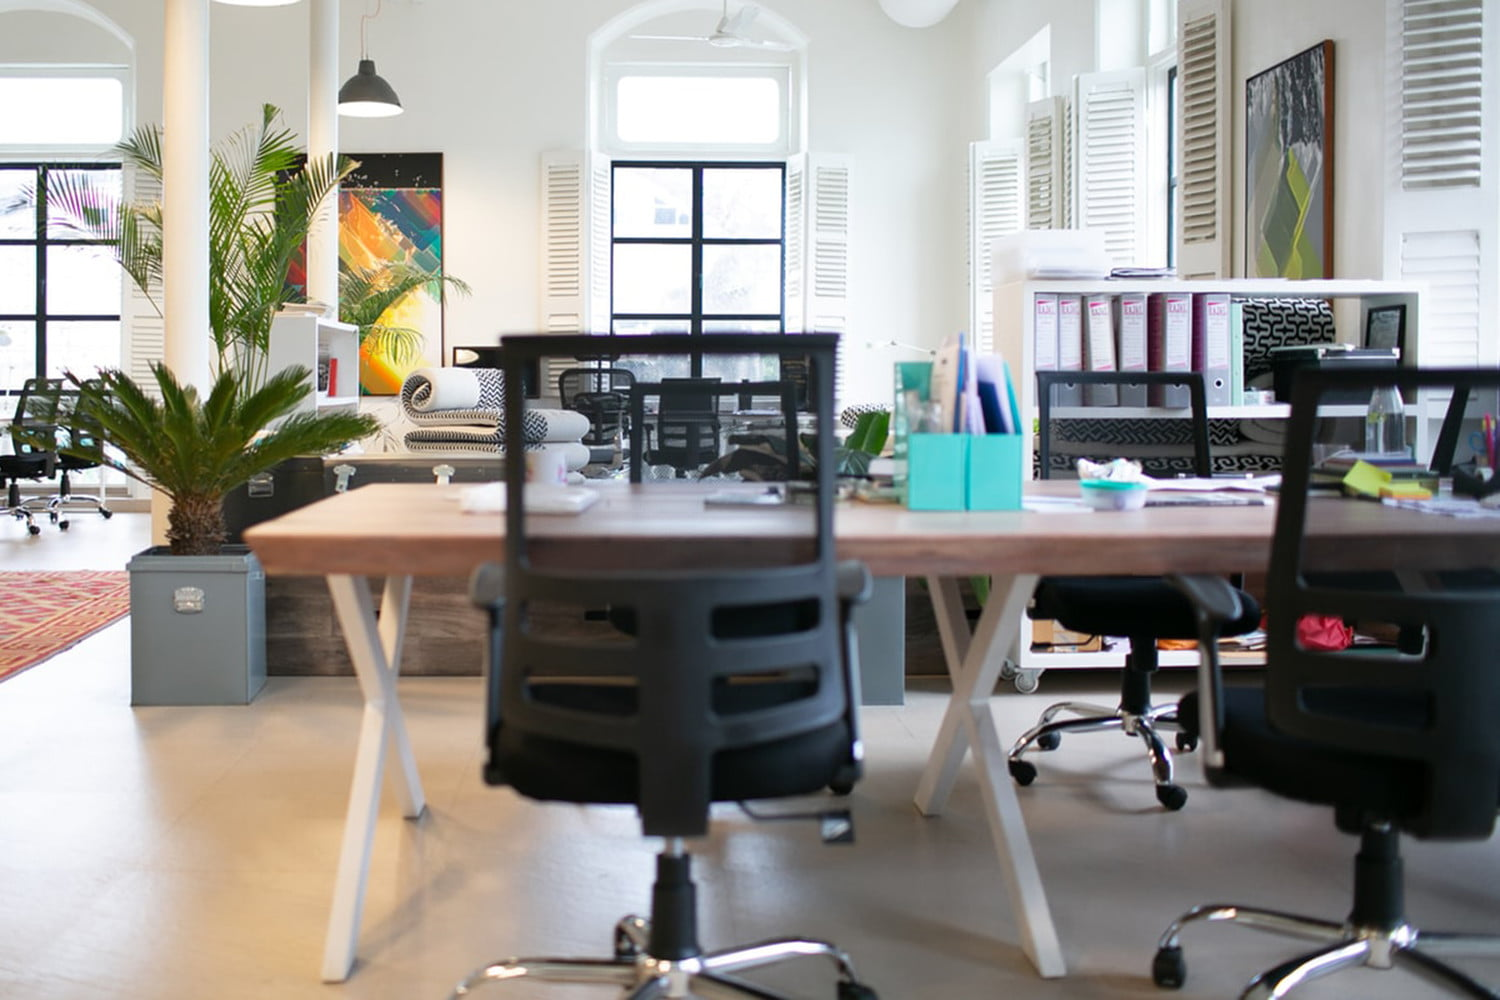 Finest low-cost workplace chair offers for August 2021